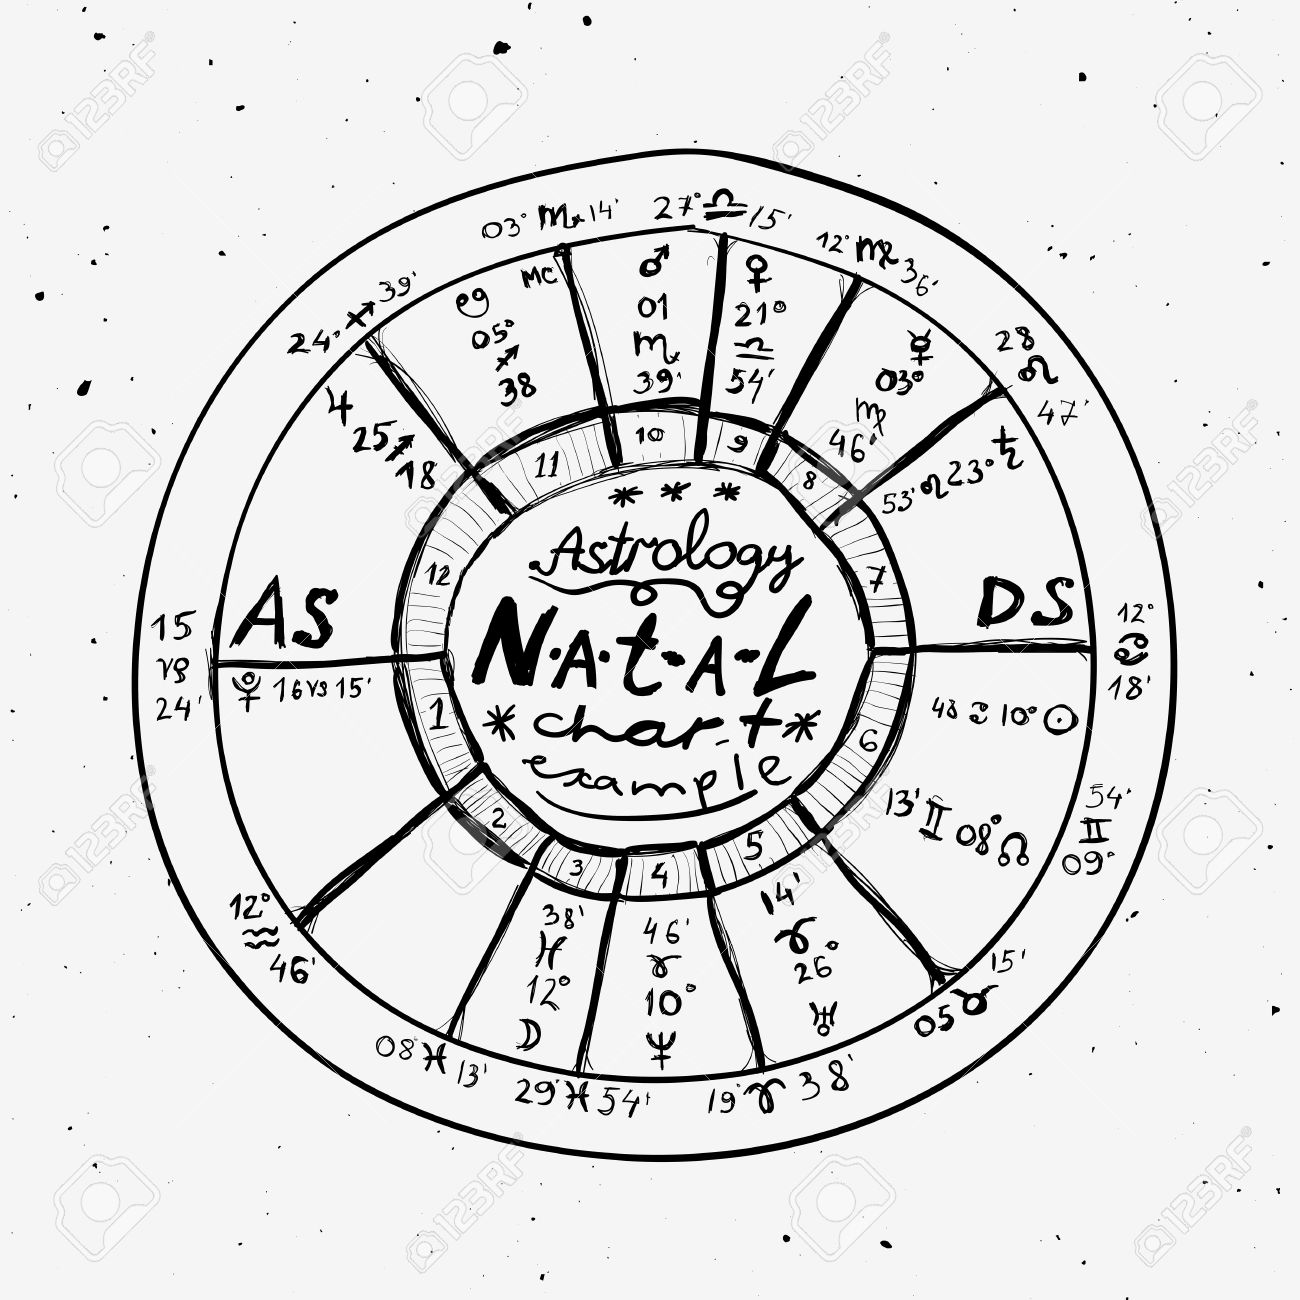 Astrology background example of the natal chart the planets astrology background example of the natal chart the planets in the houses and aspects between nvjuhfo Image collections